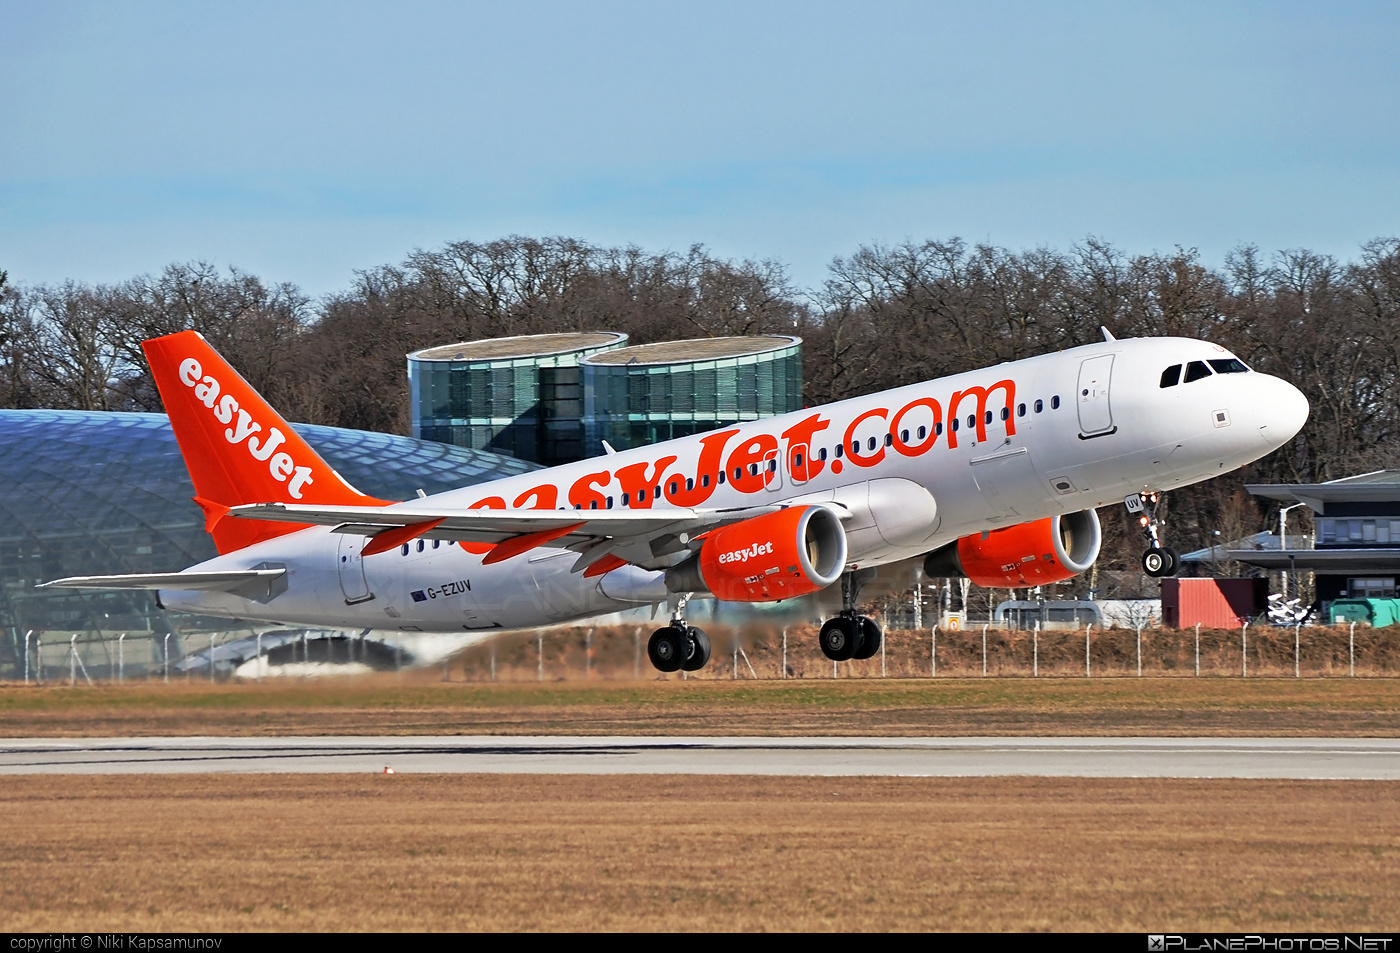 Airbus A320-214 - G-EZUV operated by easyJet #a320 #a320family #airbus #airbus320 #easyjet